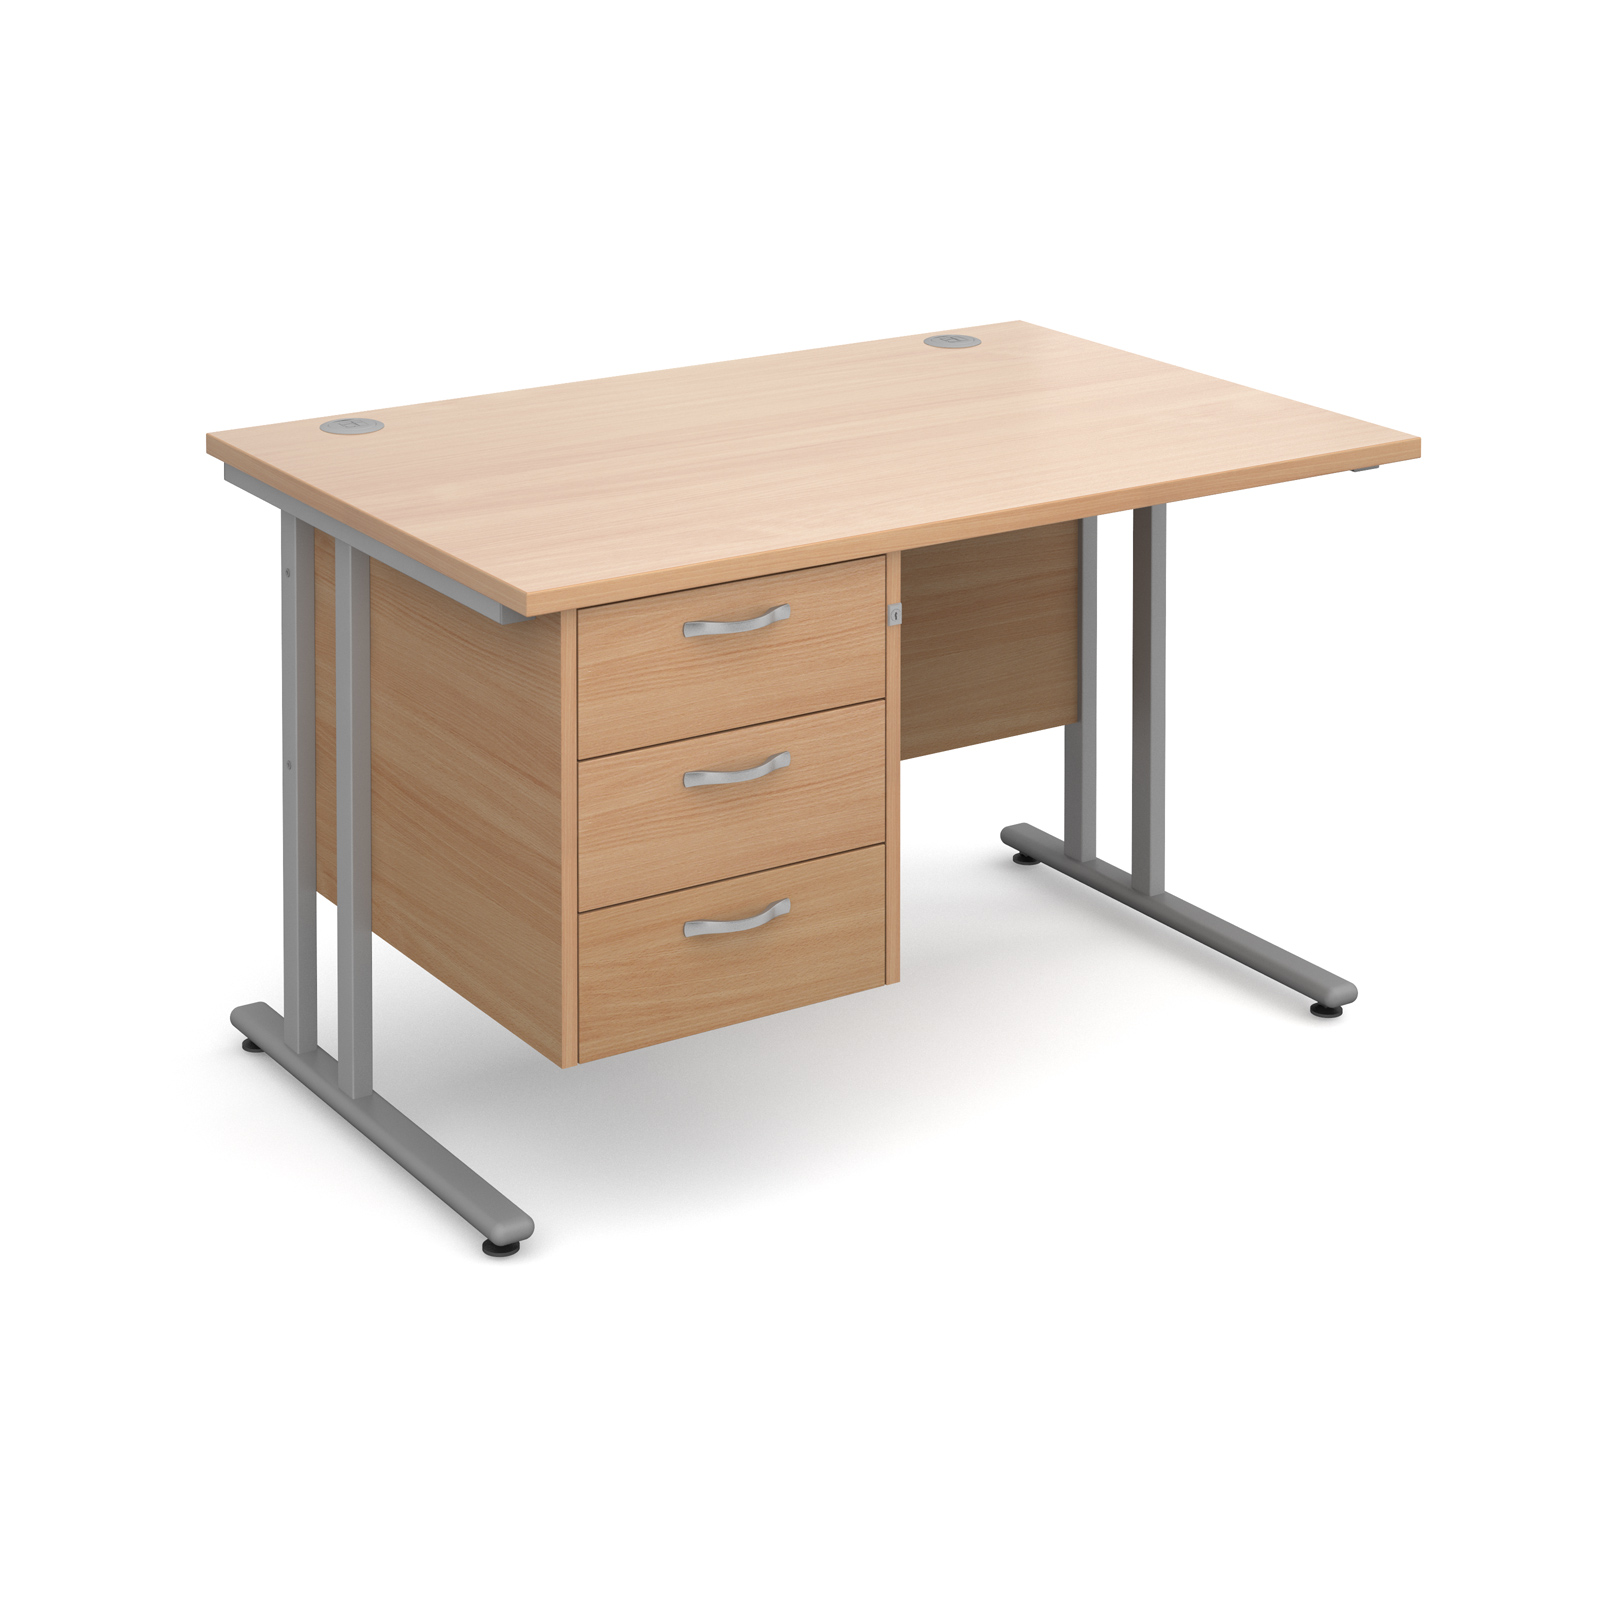 Straight Office Desk With Pedestal 1200MM X 800MM